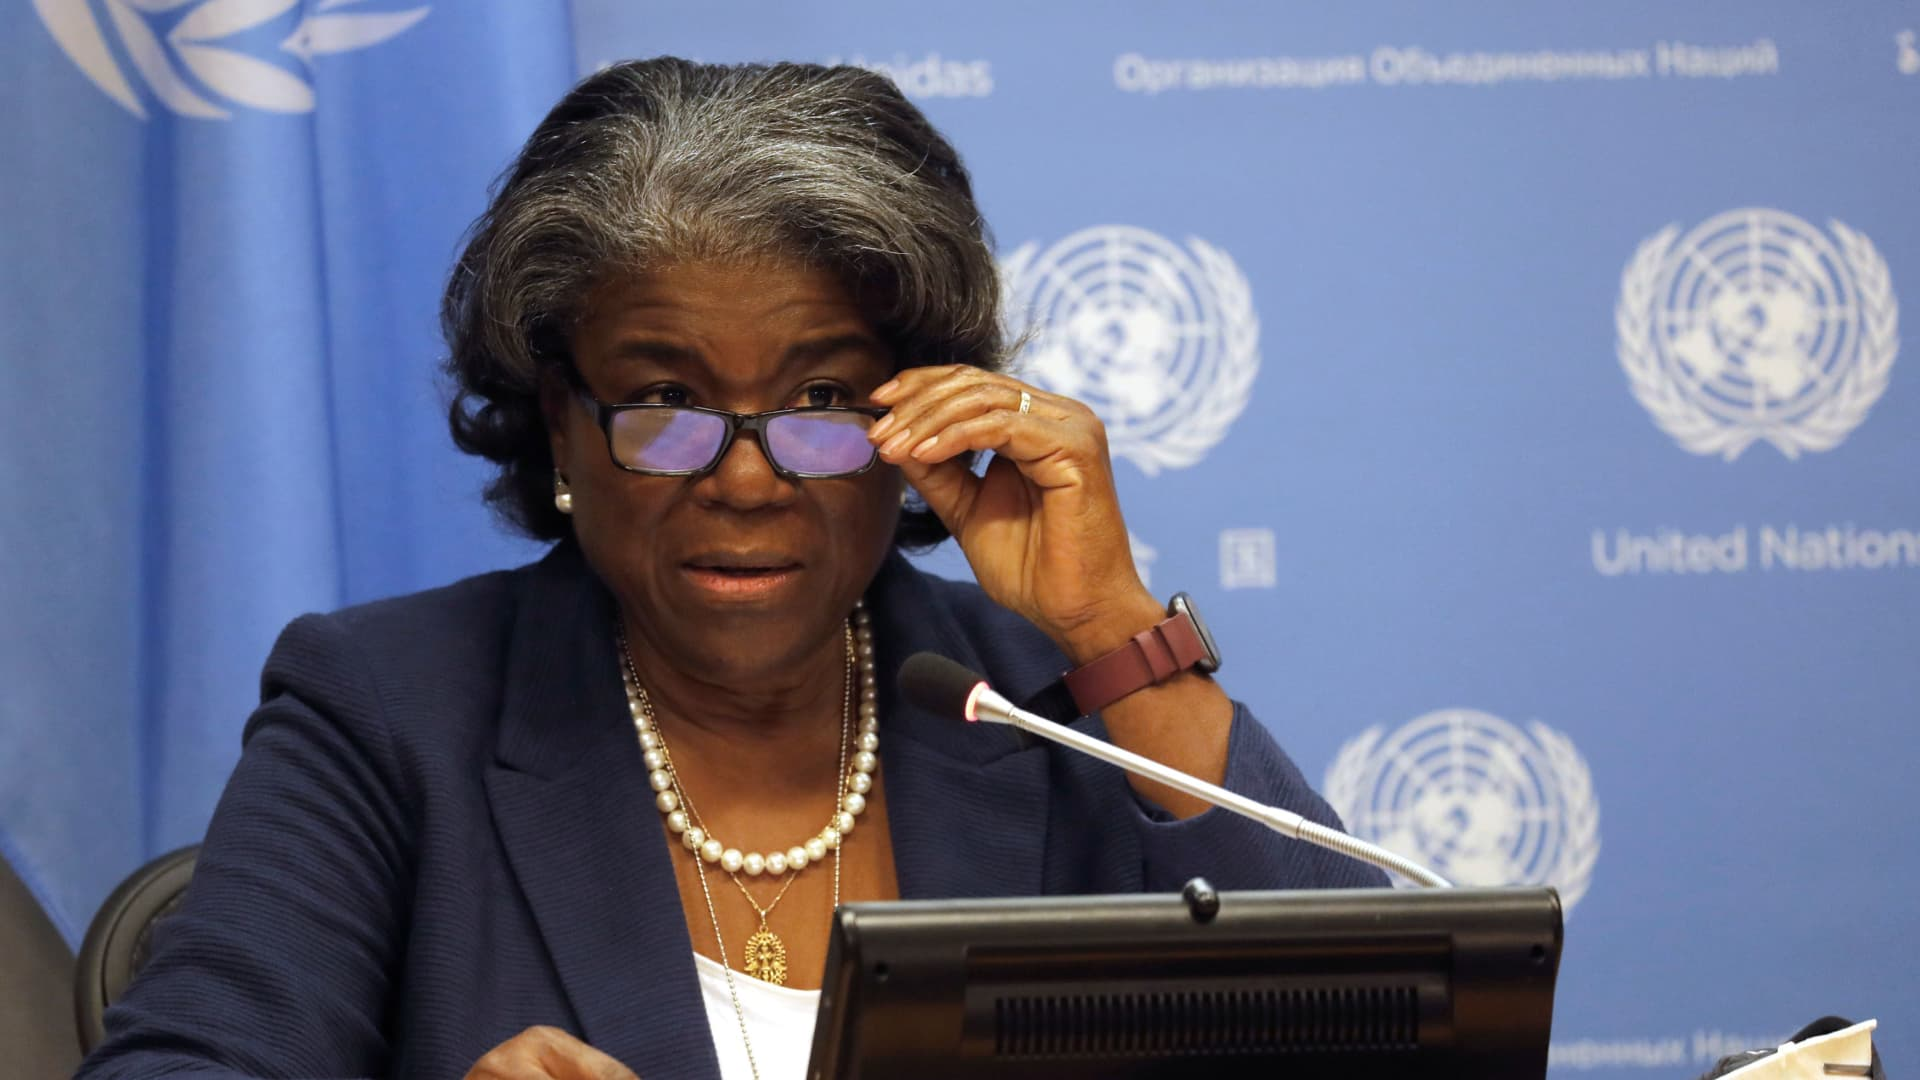 New U.S. Ambassador to the United Nations, Linda Thomas-Greenfield holds a news conference to mark the start of the U.S. presidency of the U.N. Security Council for March, at U.N. headquarters in New York, March 1, 2021.